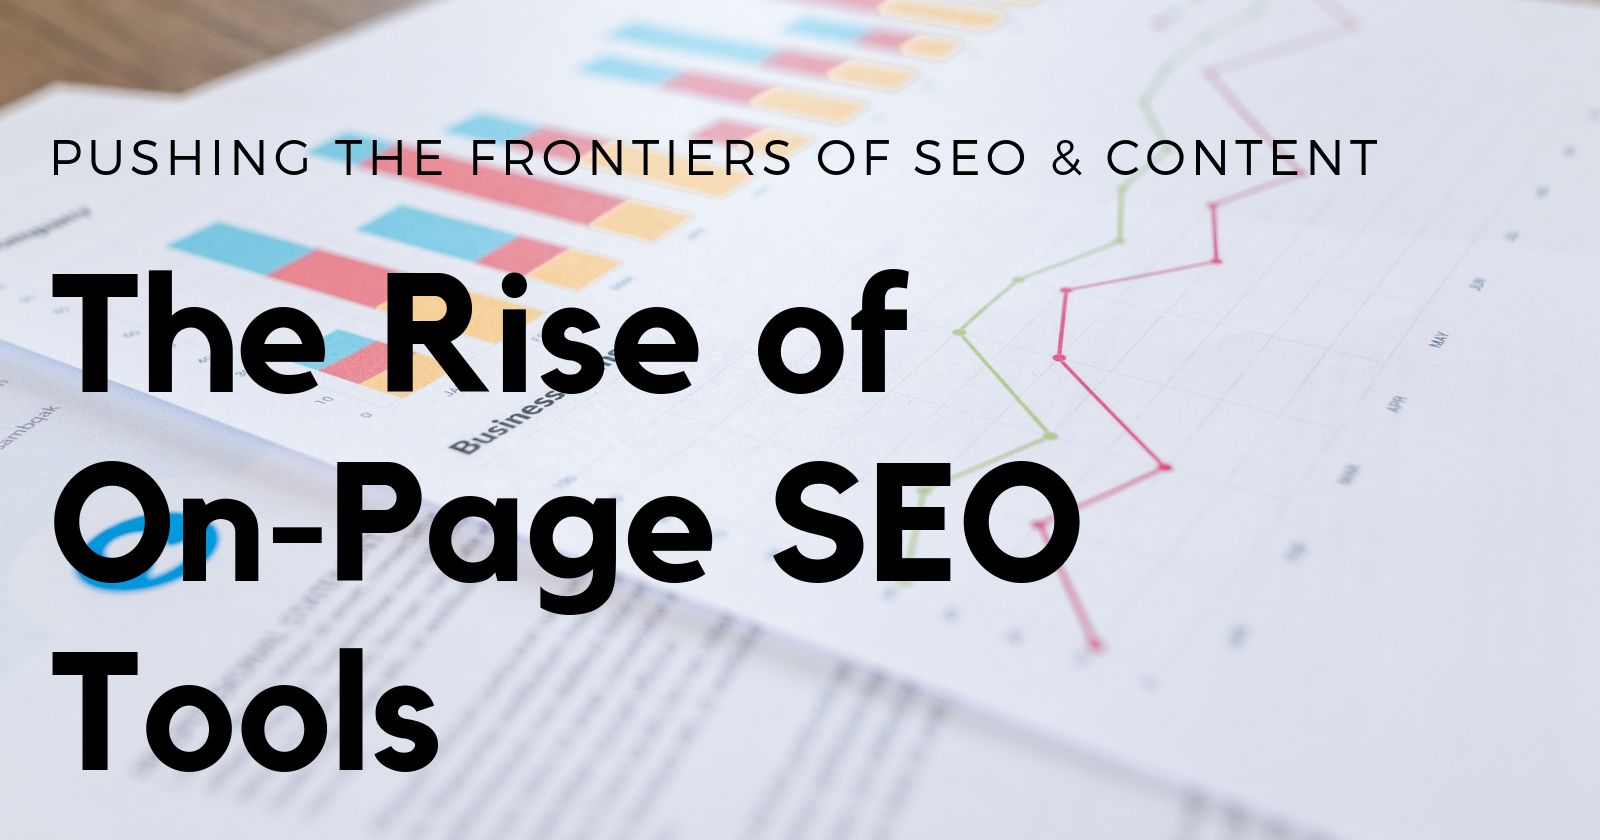 searchenginejournal.com - Viola Eva - The Rise of On-Page SEO Tools: Pushing the Frontiers of SEO & Content